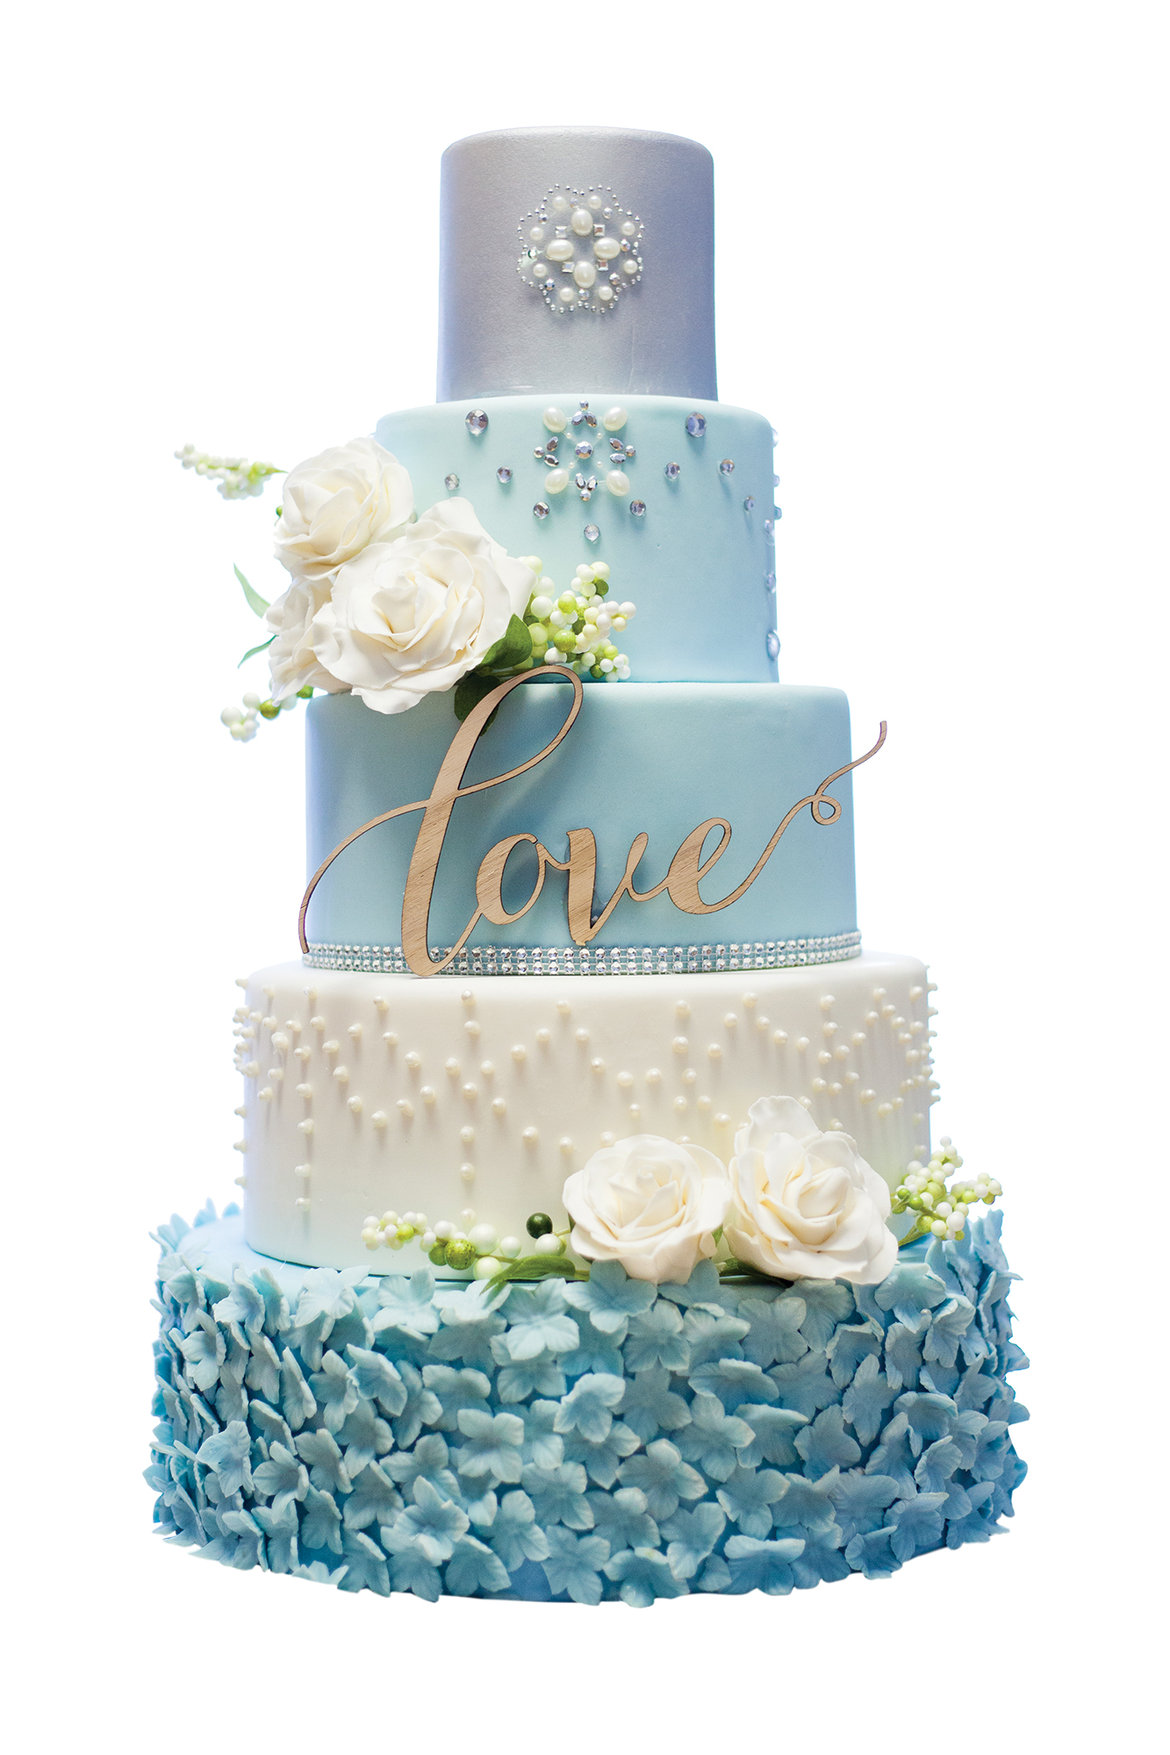 10 tips for choosing your wedding cake bridalguide blue and white cake junglespirit Images